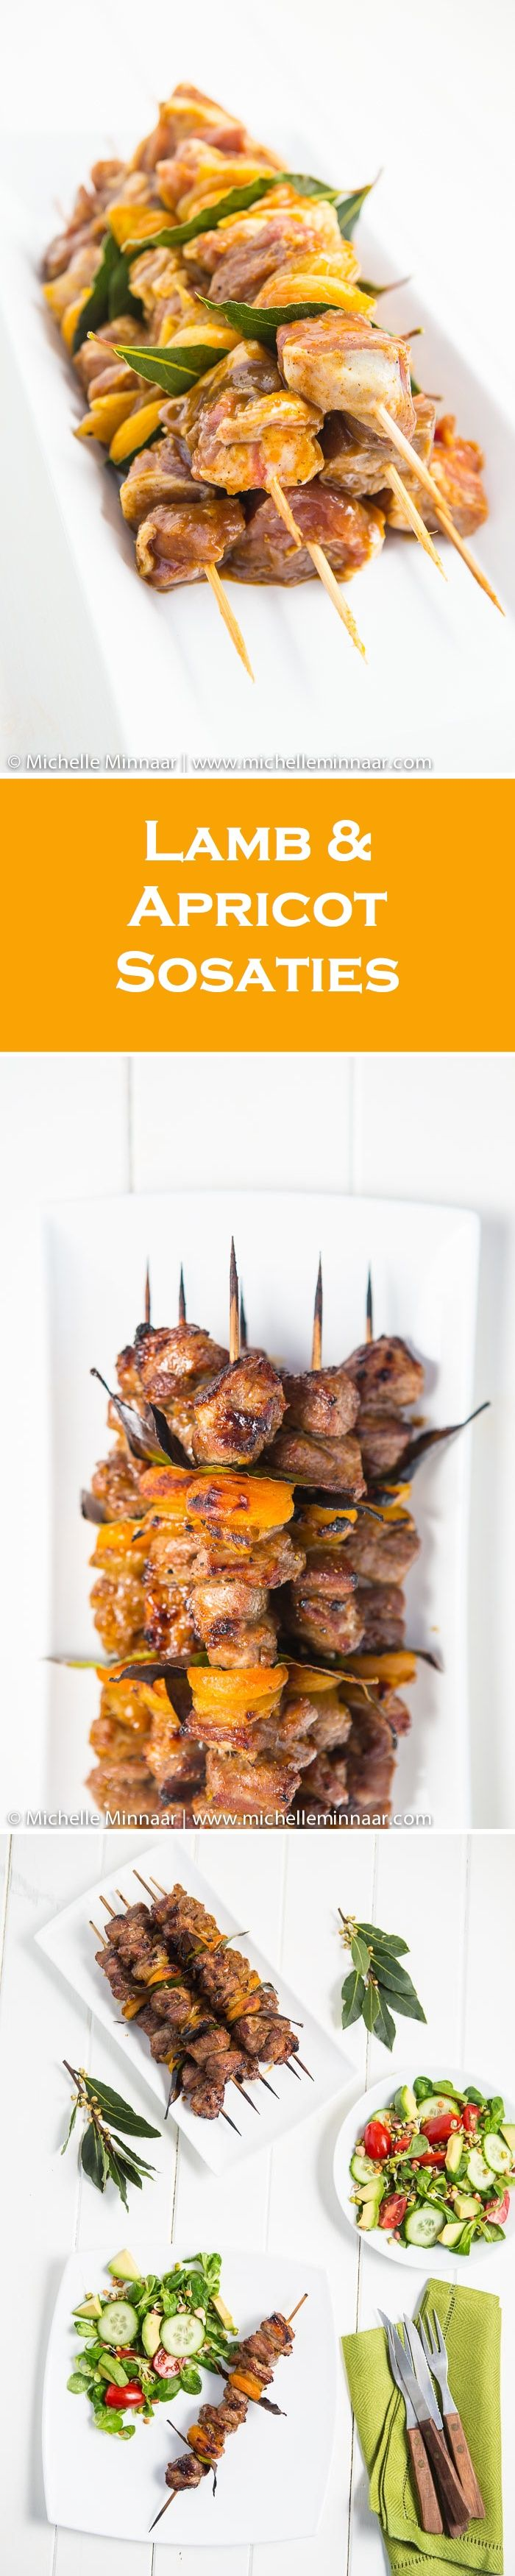 Lamb & Apricot Sosaties - South African barbecue at its best!